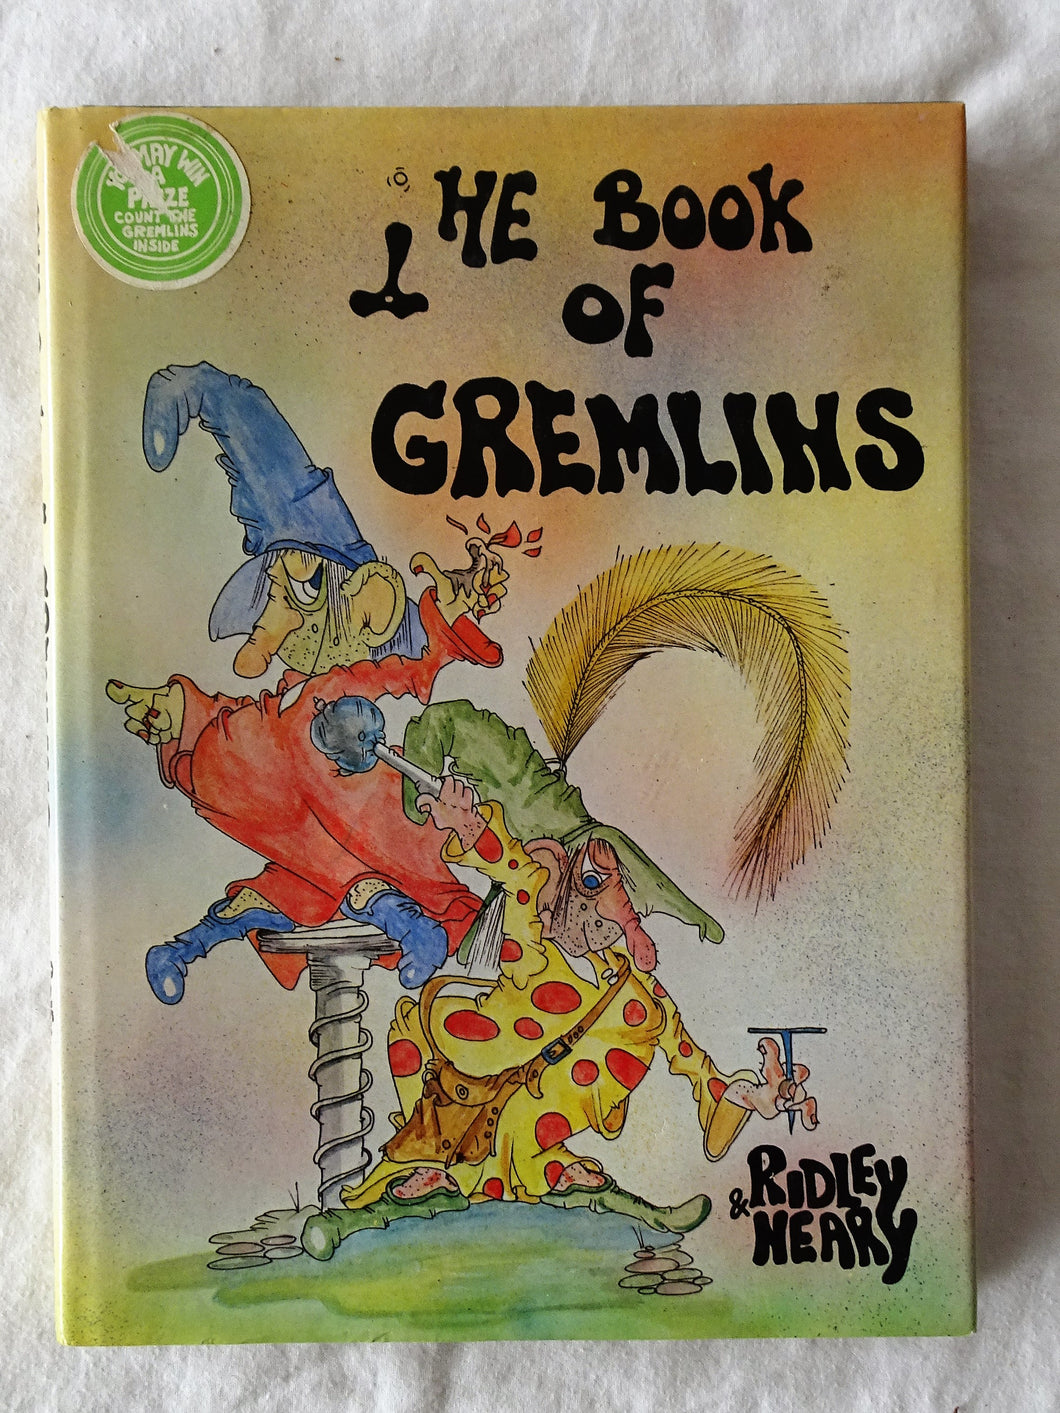 The Book of Gremlins by Michael Ridley and Bryan Neary